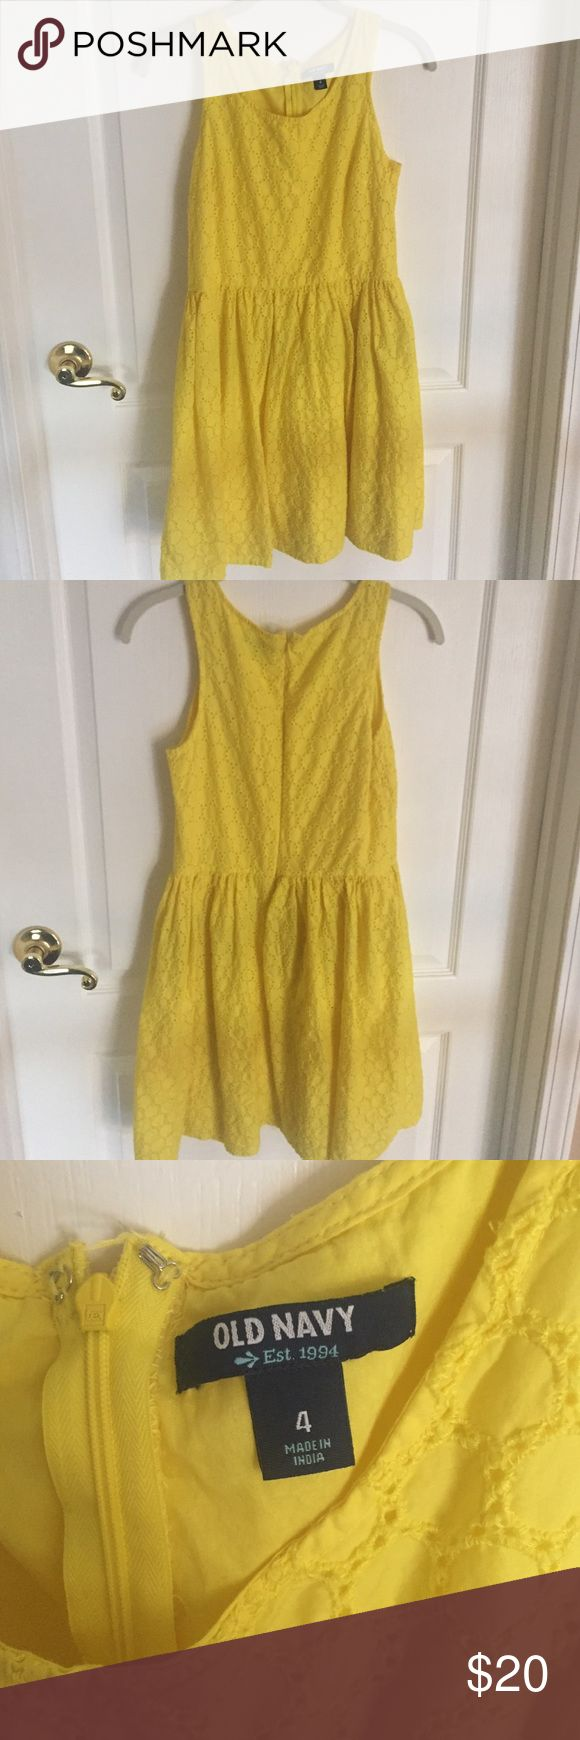 Old Navy yellow tank top dress with circle pattern Size 4 Old Navy yellow tank top peplum dress with circle pattern. Worn once. Old Navy Dresses Mini